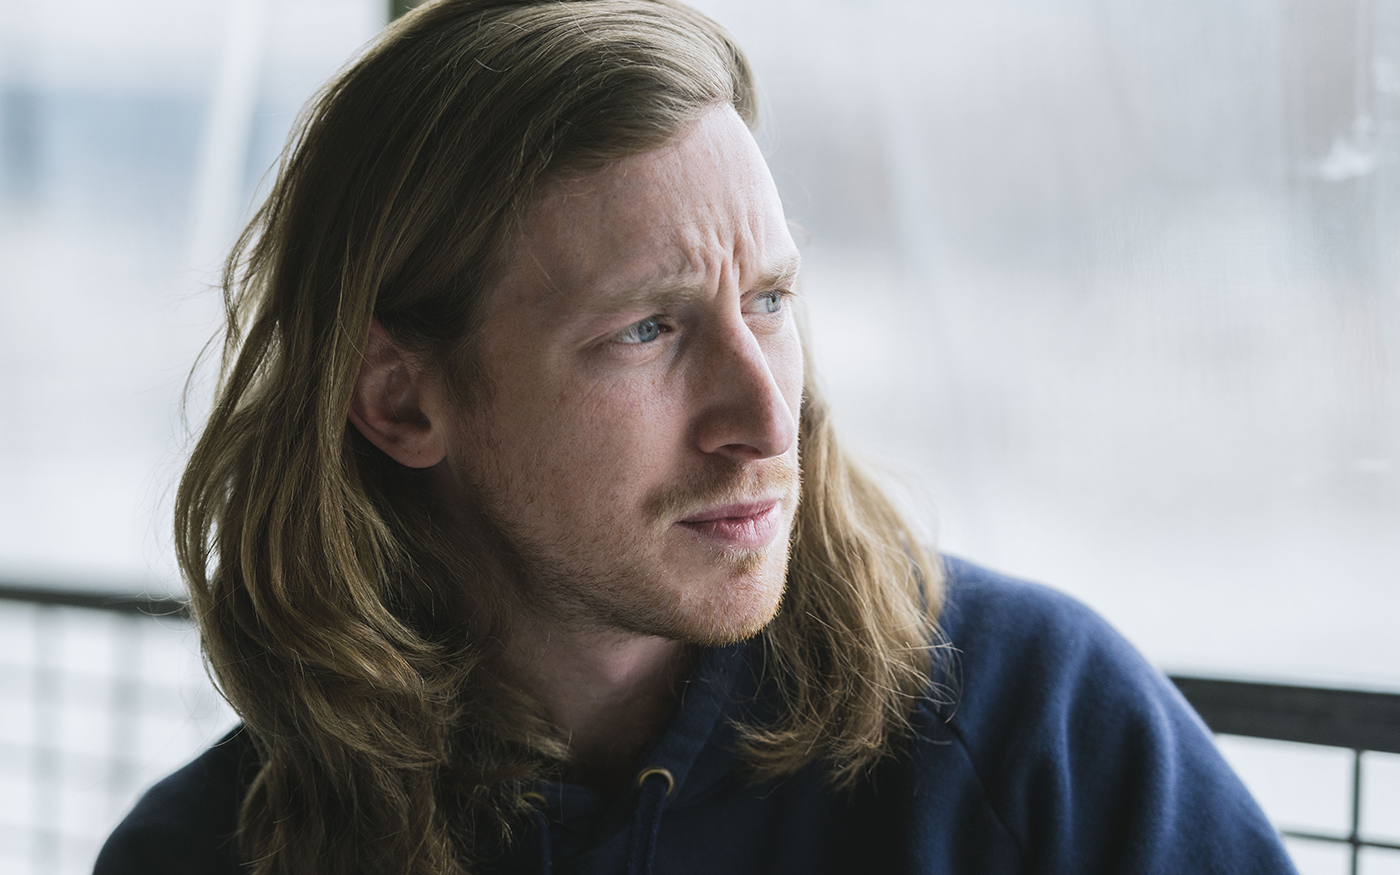 Asher Roth interview 2016 1